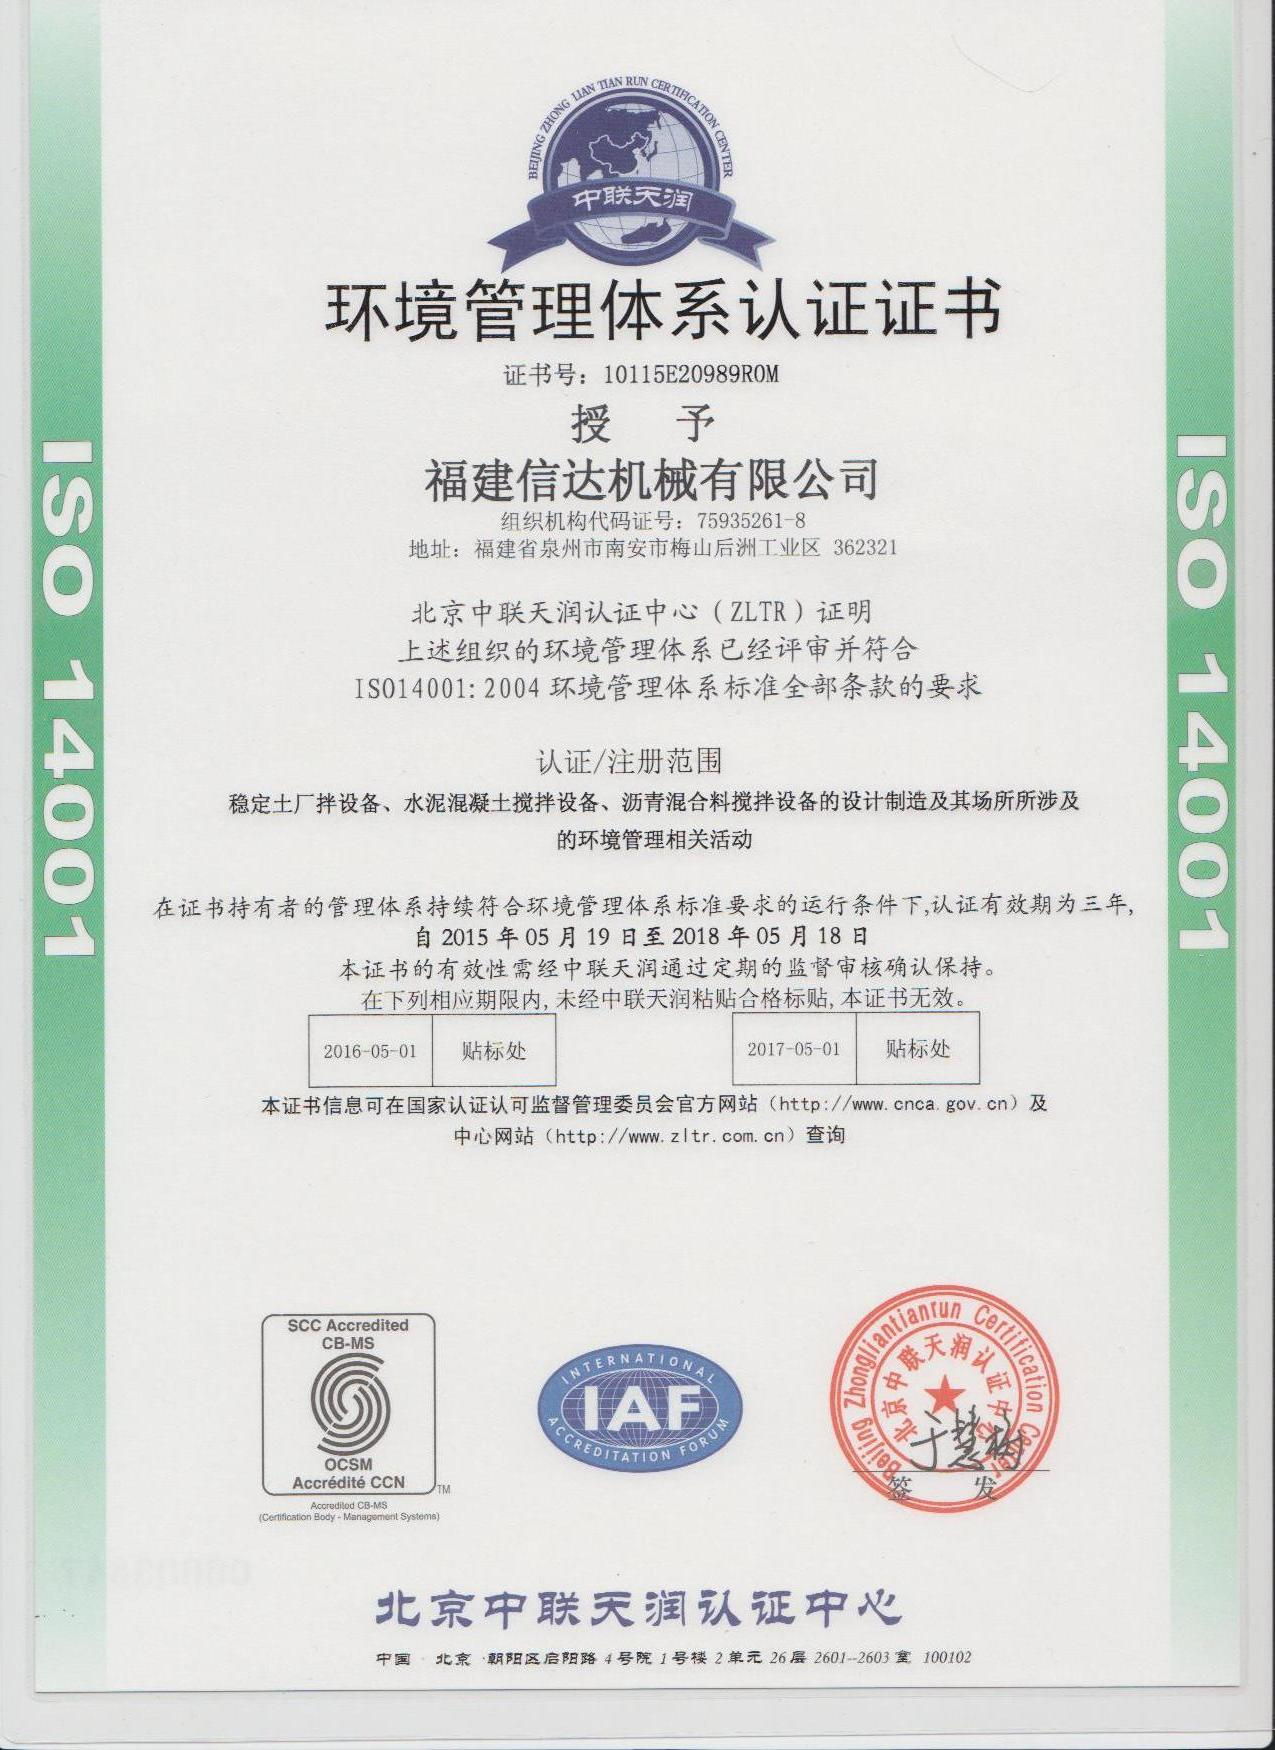 ISO 1400 Environmental Management System Certification